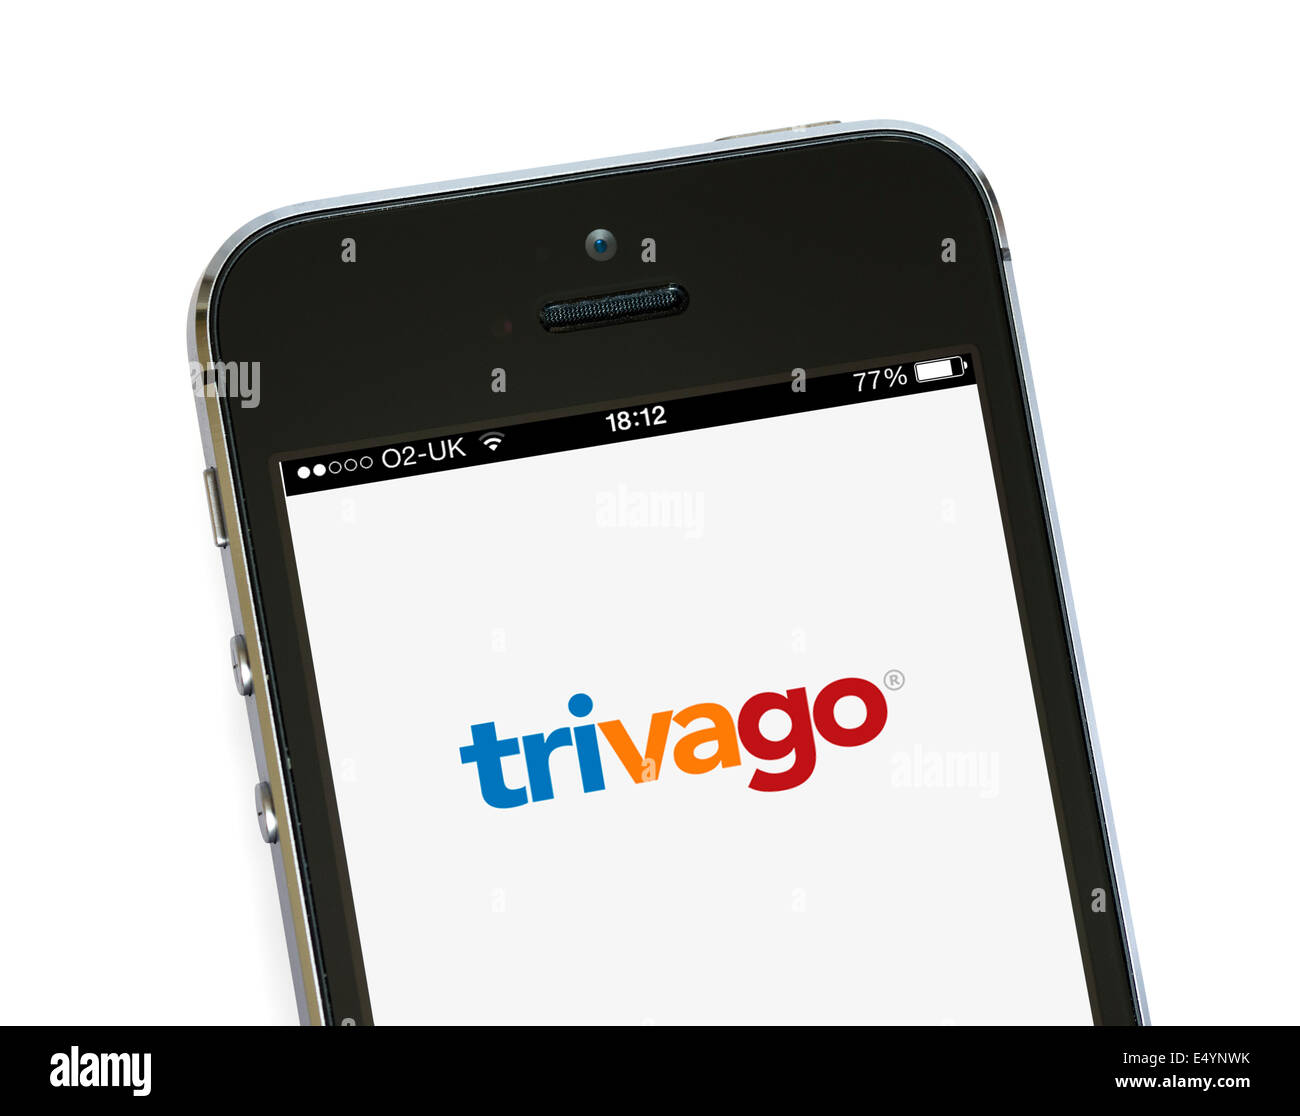 Trivago app, the hotel price comparison tool, on an Apple iPhone 5S, UK - Stock Image